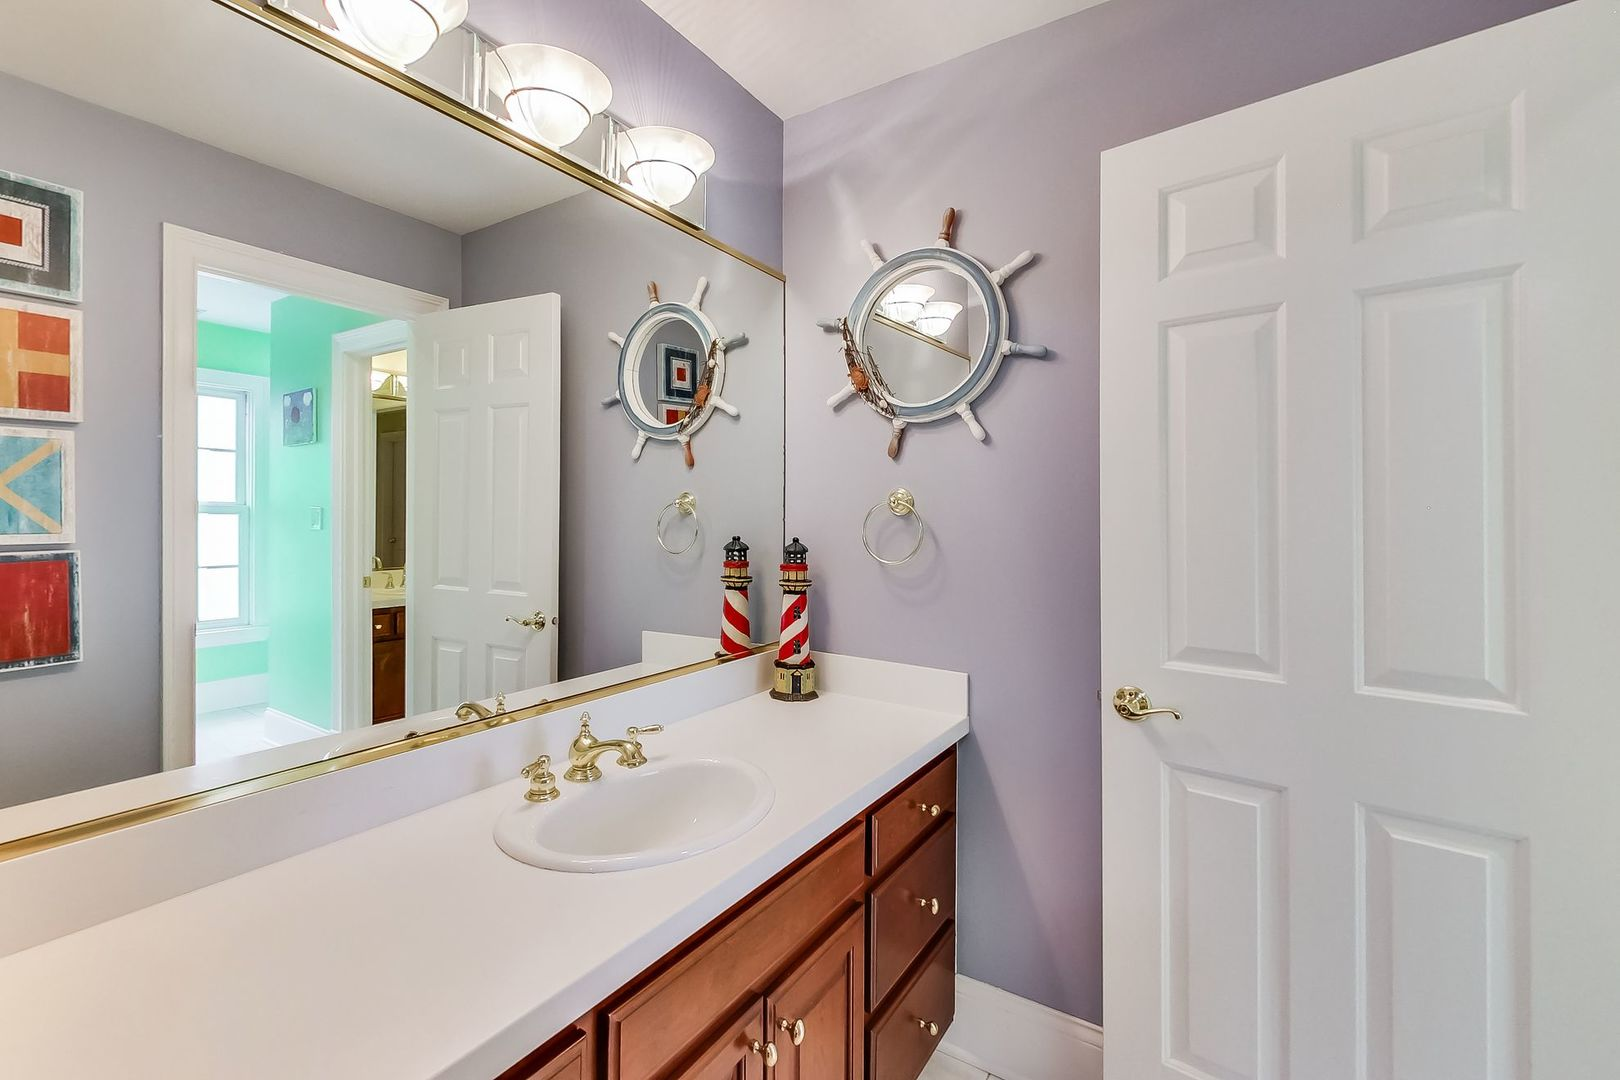 5831 South Grant, Hinsdale, Illinois, 60521